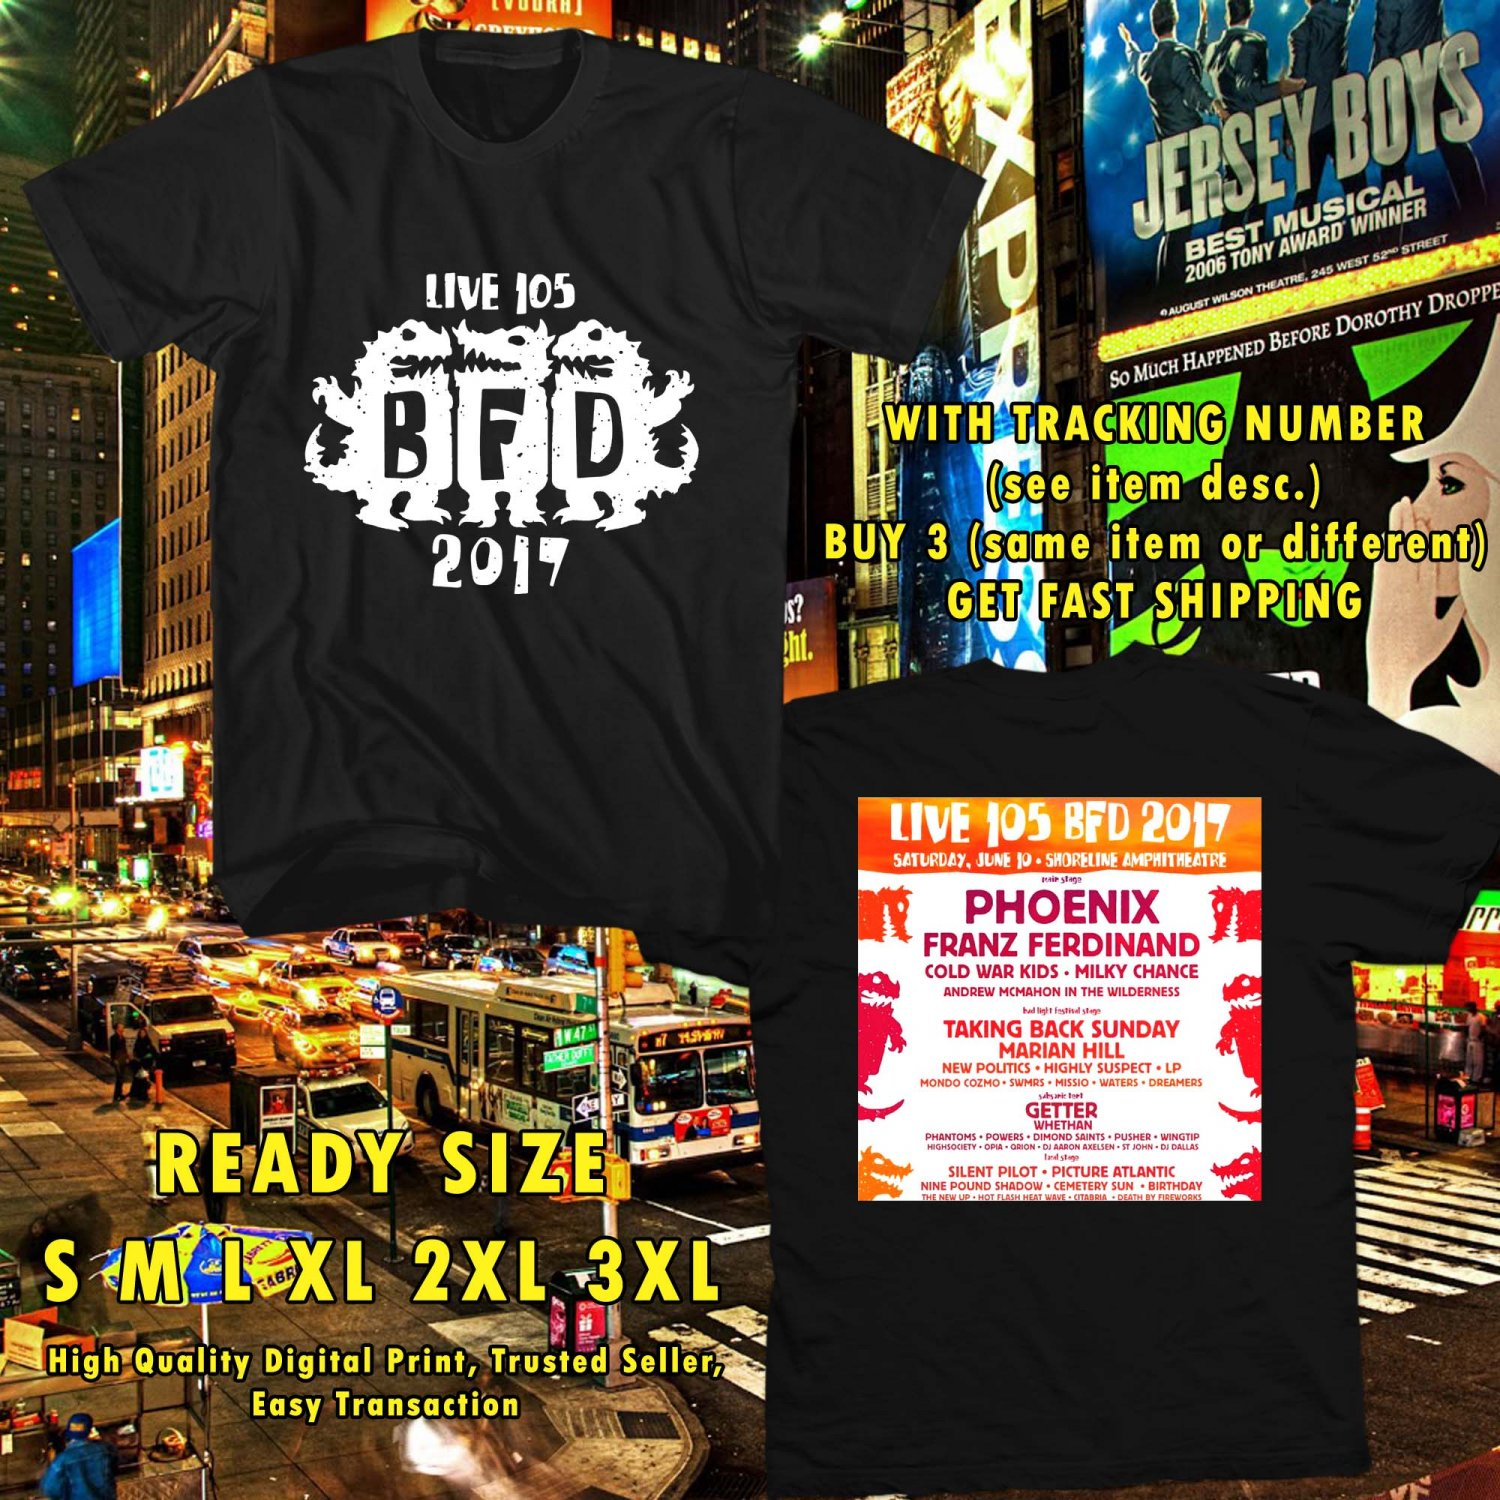 HITS LIVE 105'S BFD FESTIVAL JUN 2017 BLACK TEE'S 2SIDE MAN WOMEN ASTR 447